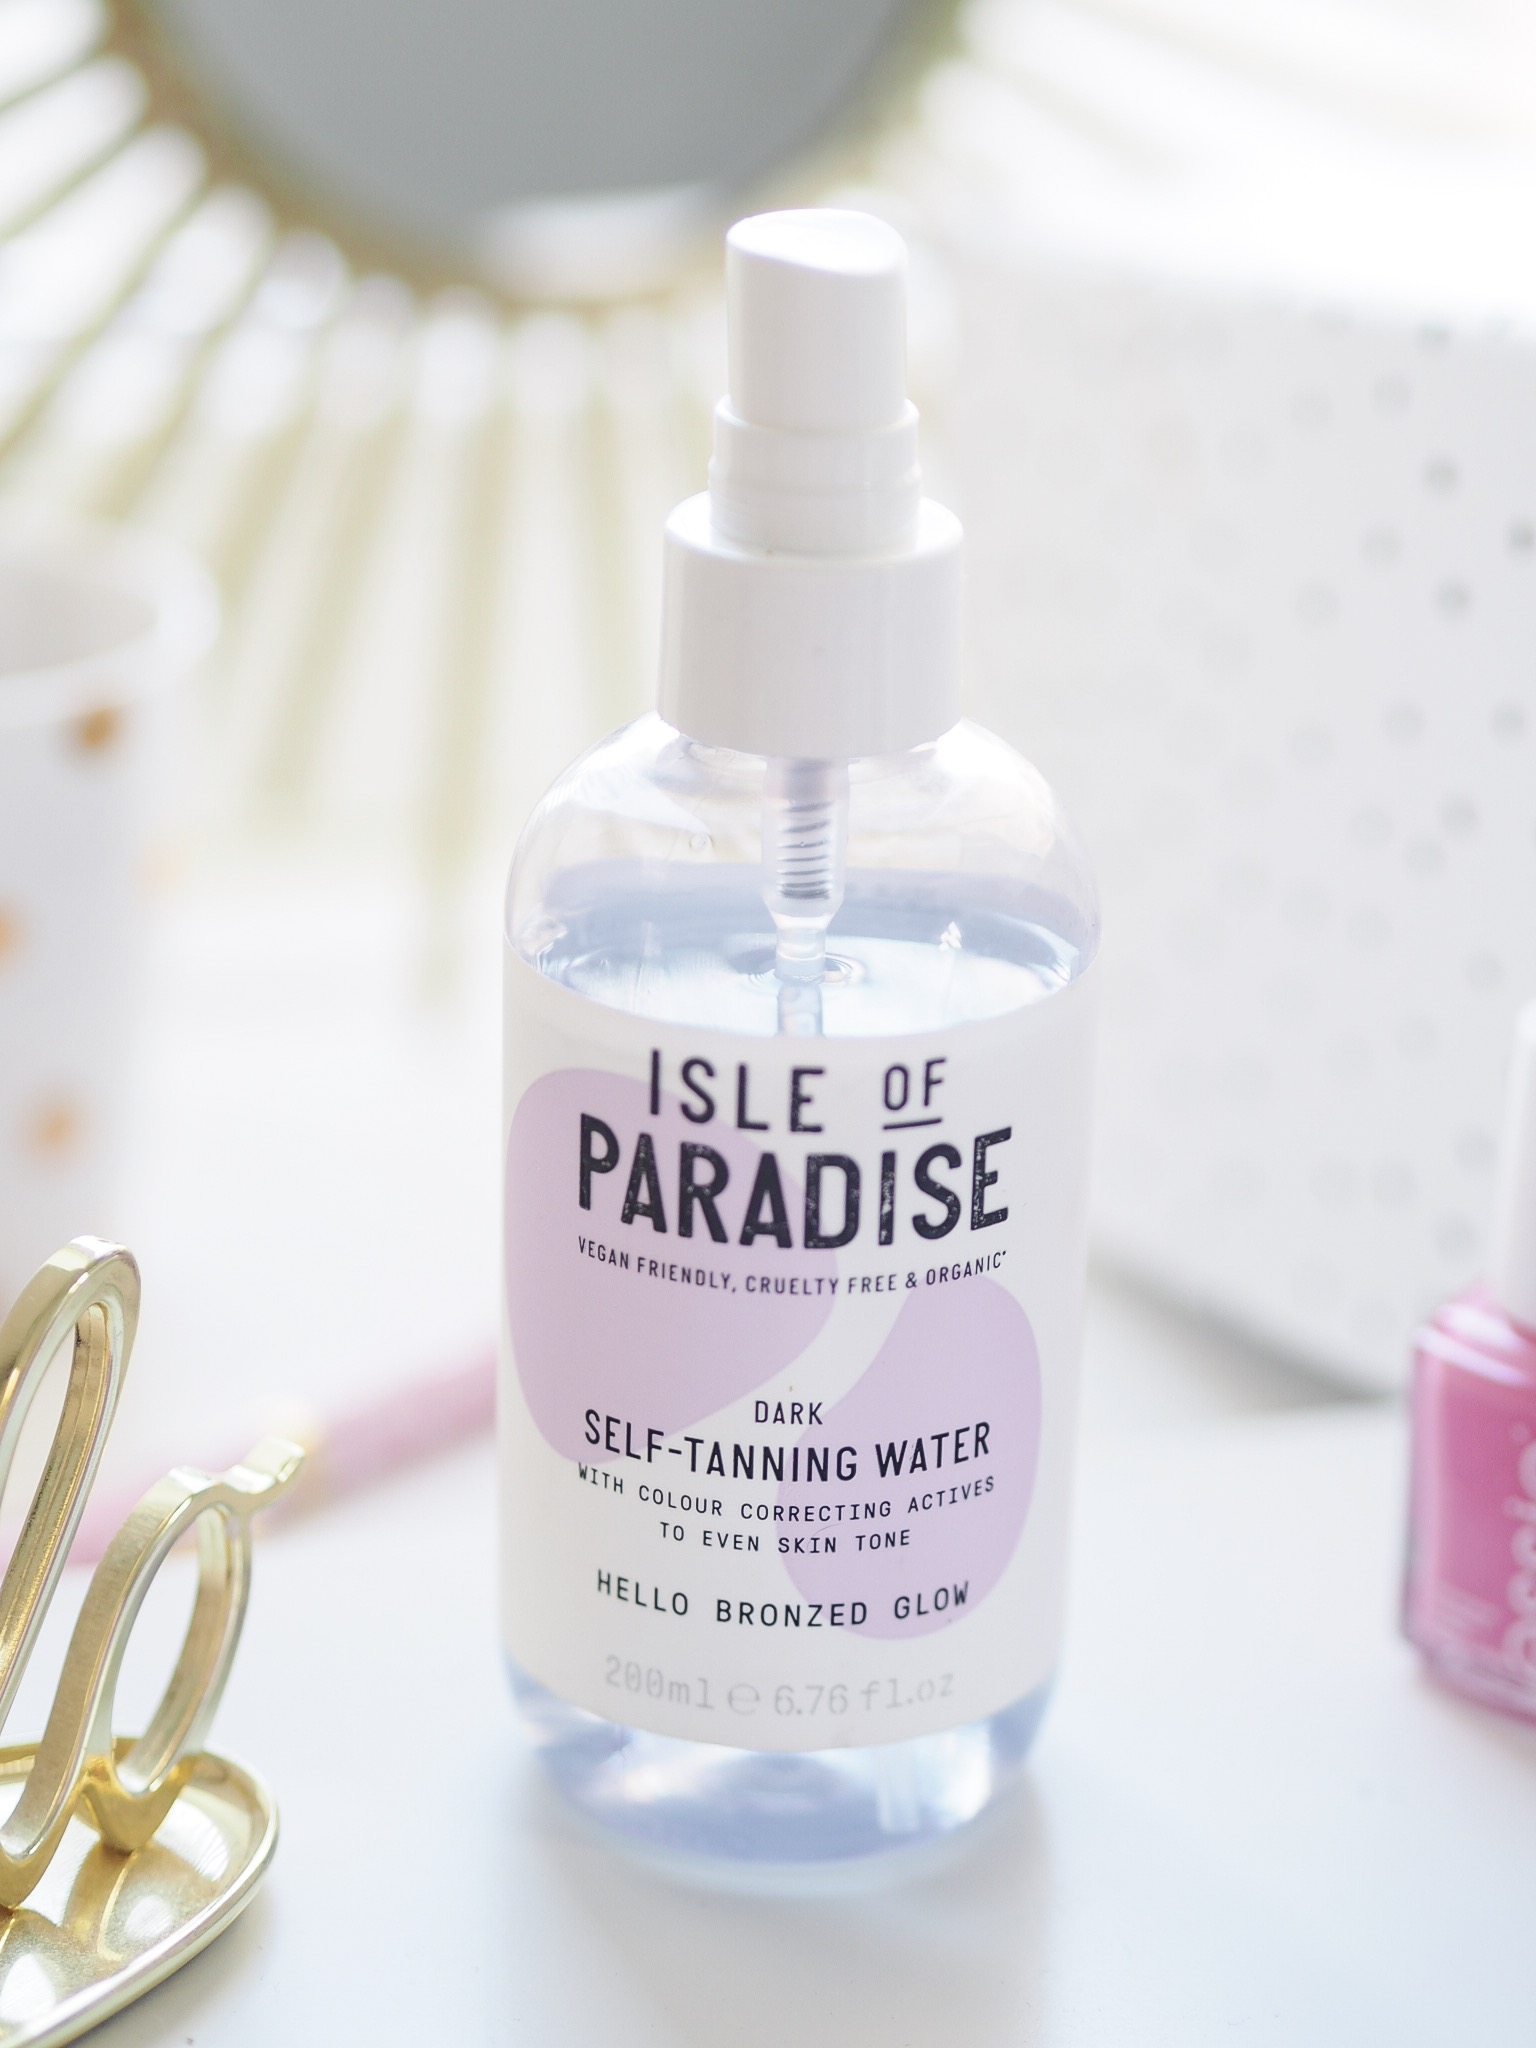 Isle of paradise false tan review